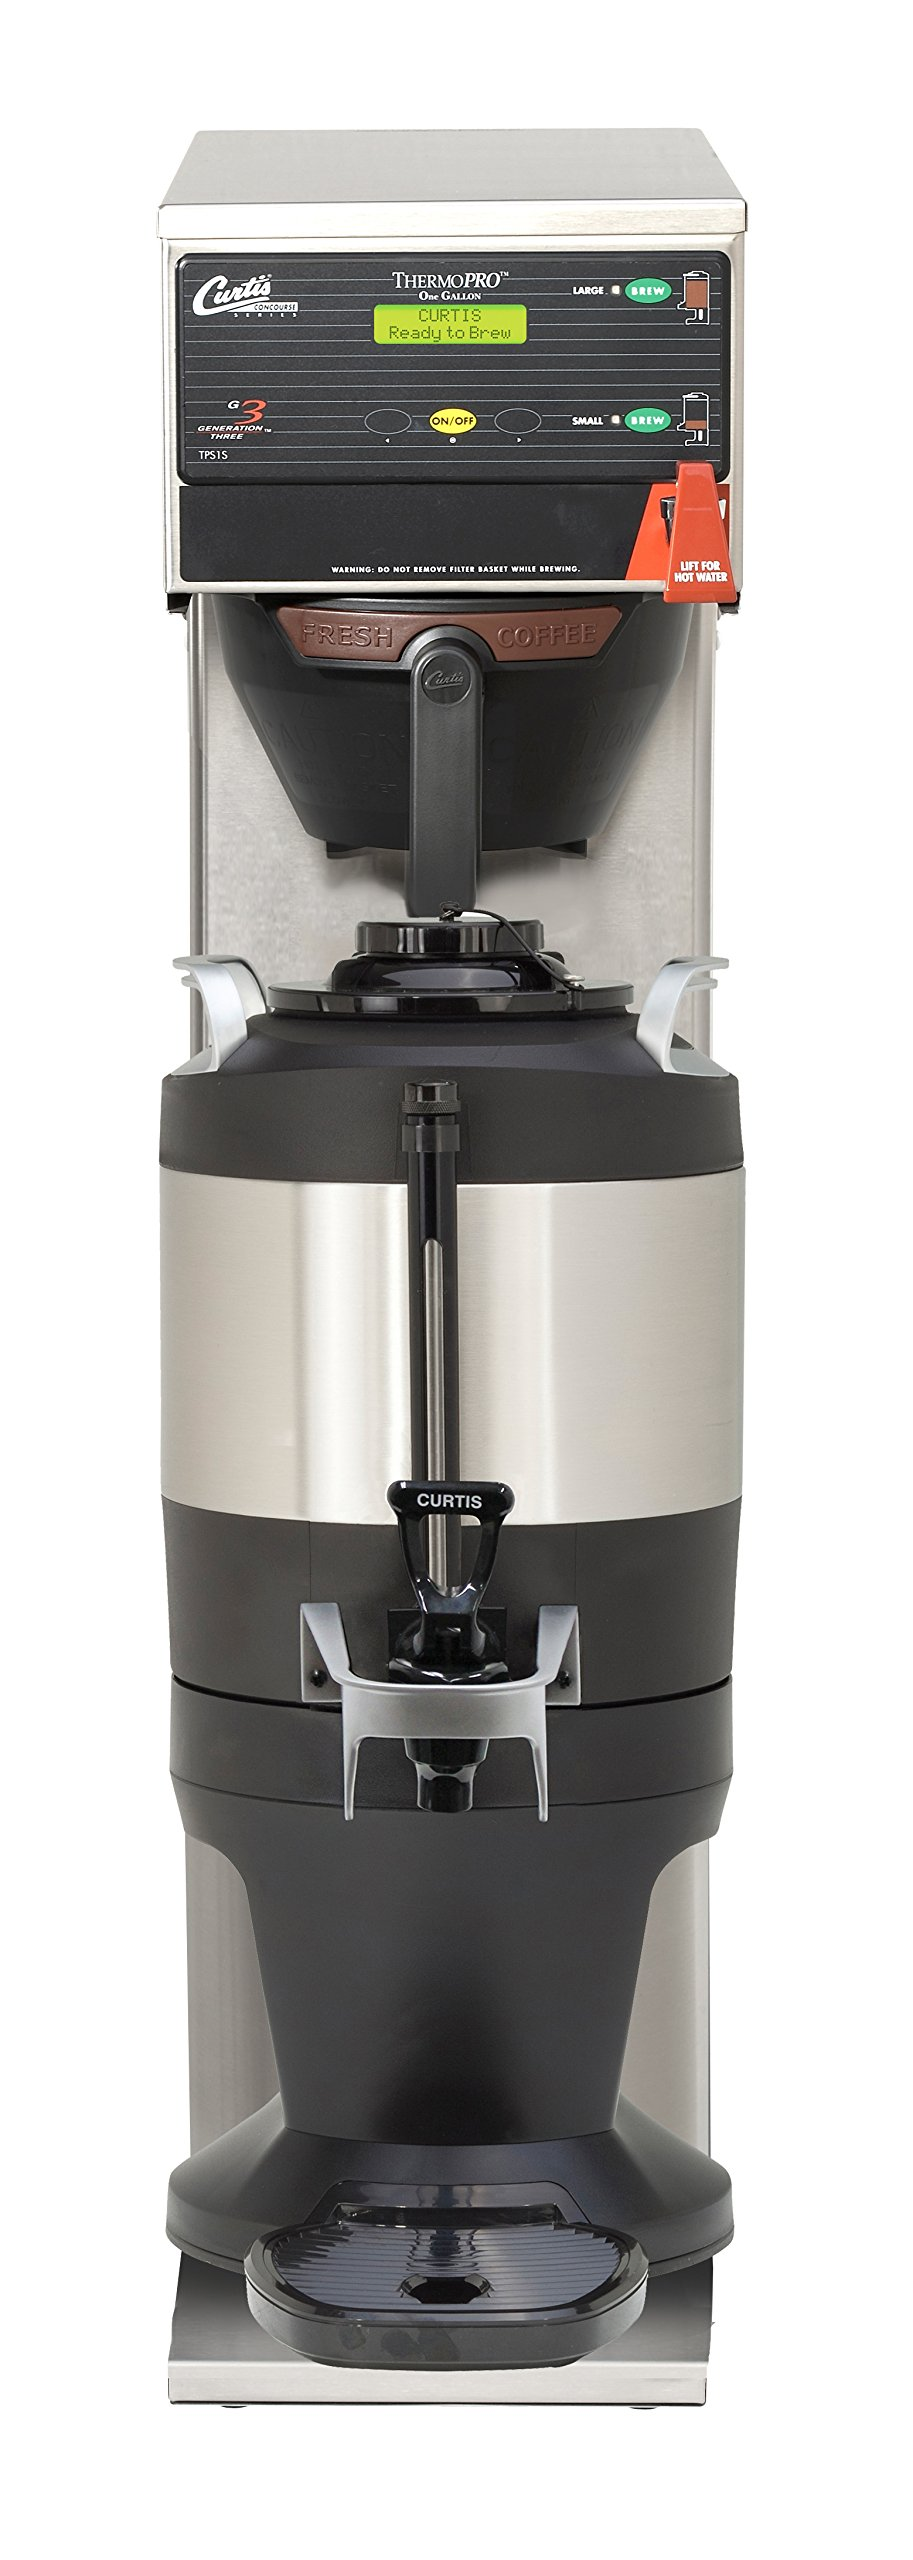 Wilbur Curtis G3 ThermoPro 1.0 Gallon Single Tall Coffee Brewer,  Dual Voltage; 1.0 Gallon Dispenser Sold Separately (Txsg0101S600) - Commercial Coffee Brewer  - TP1ST63A3000 (Each)